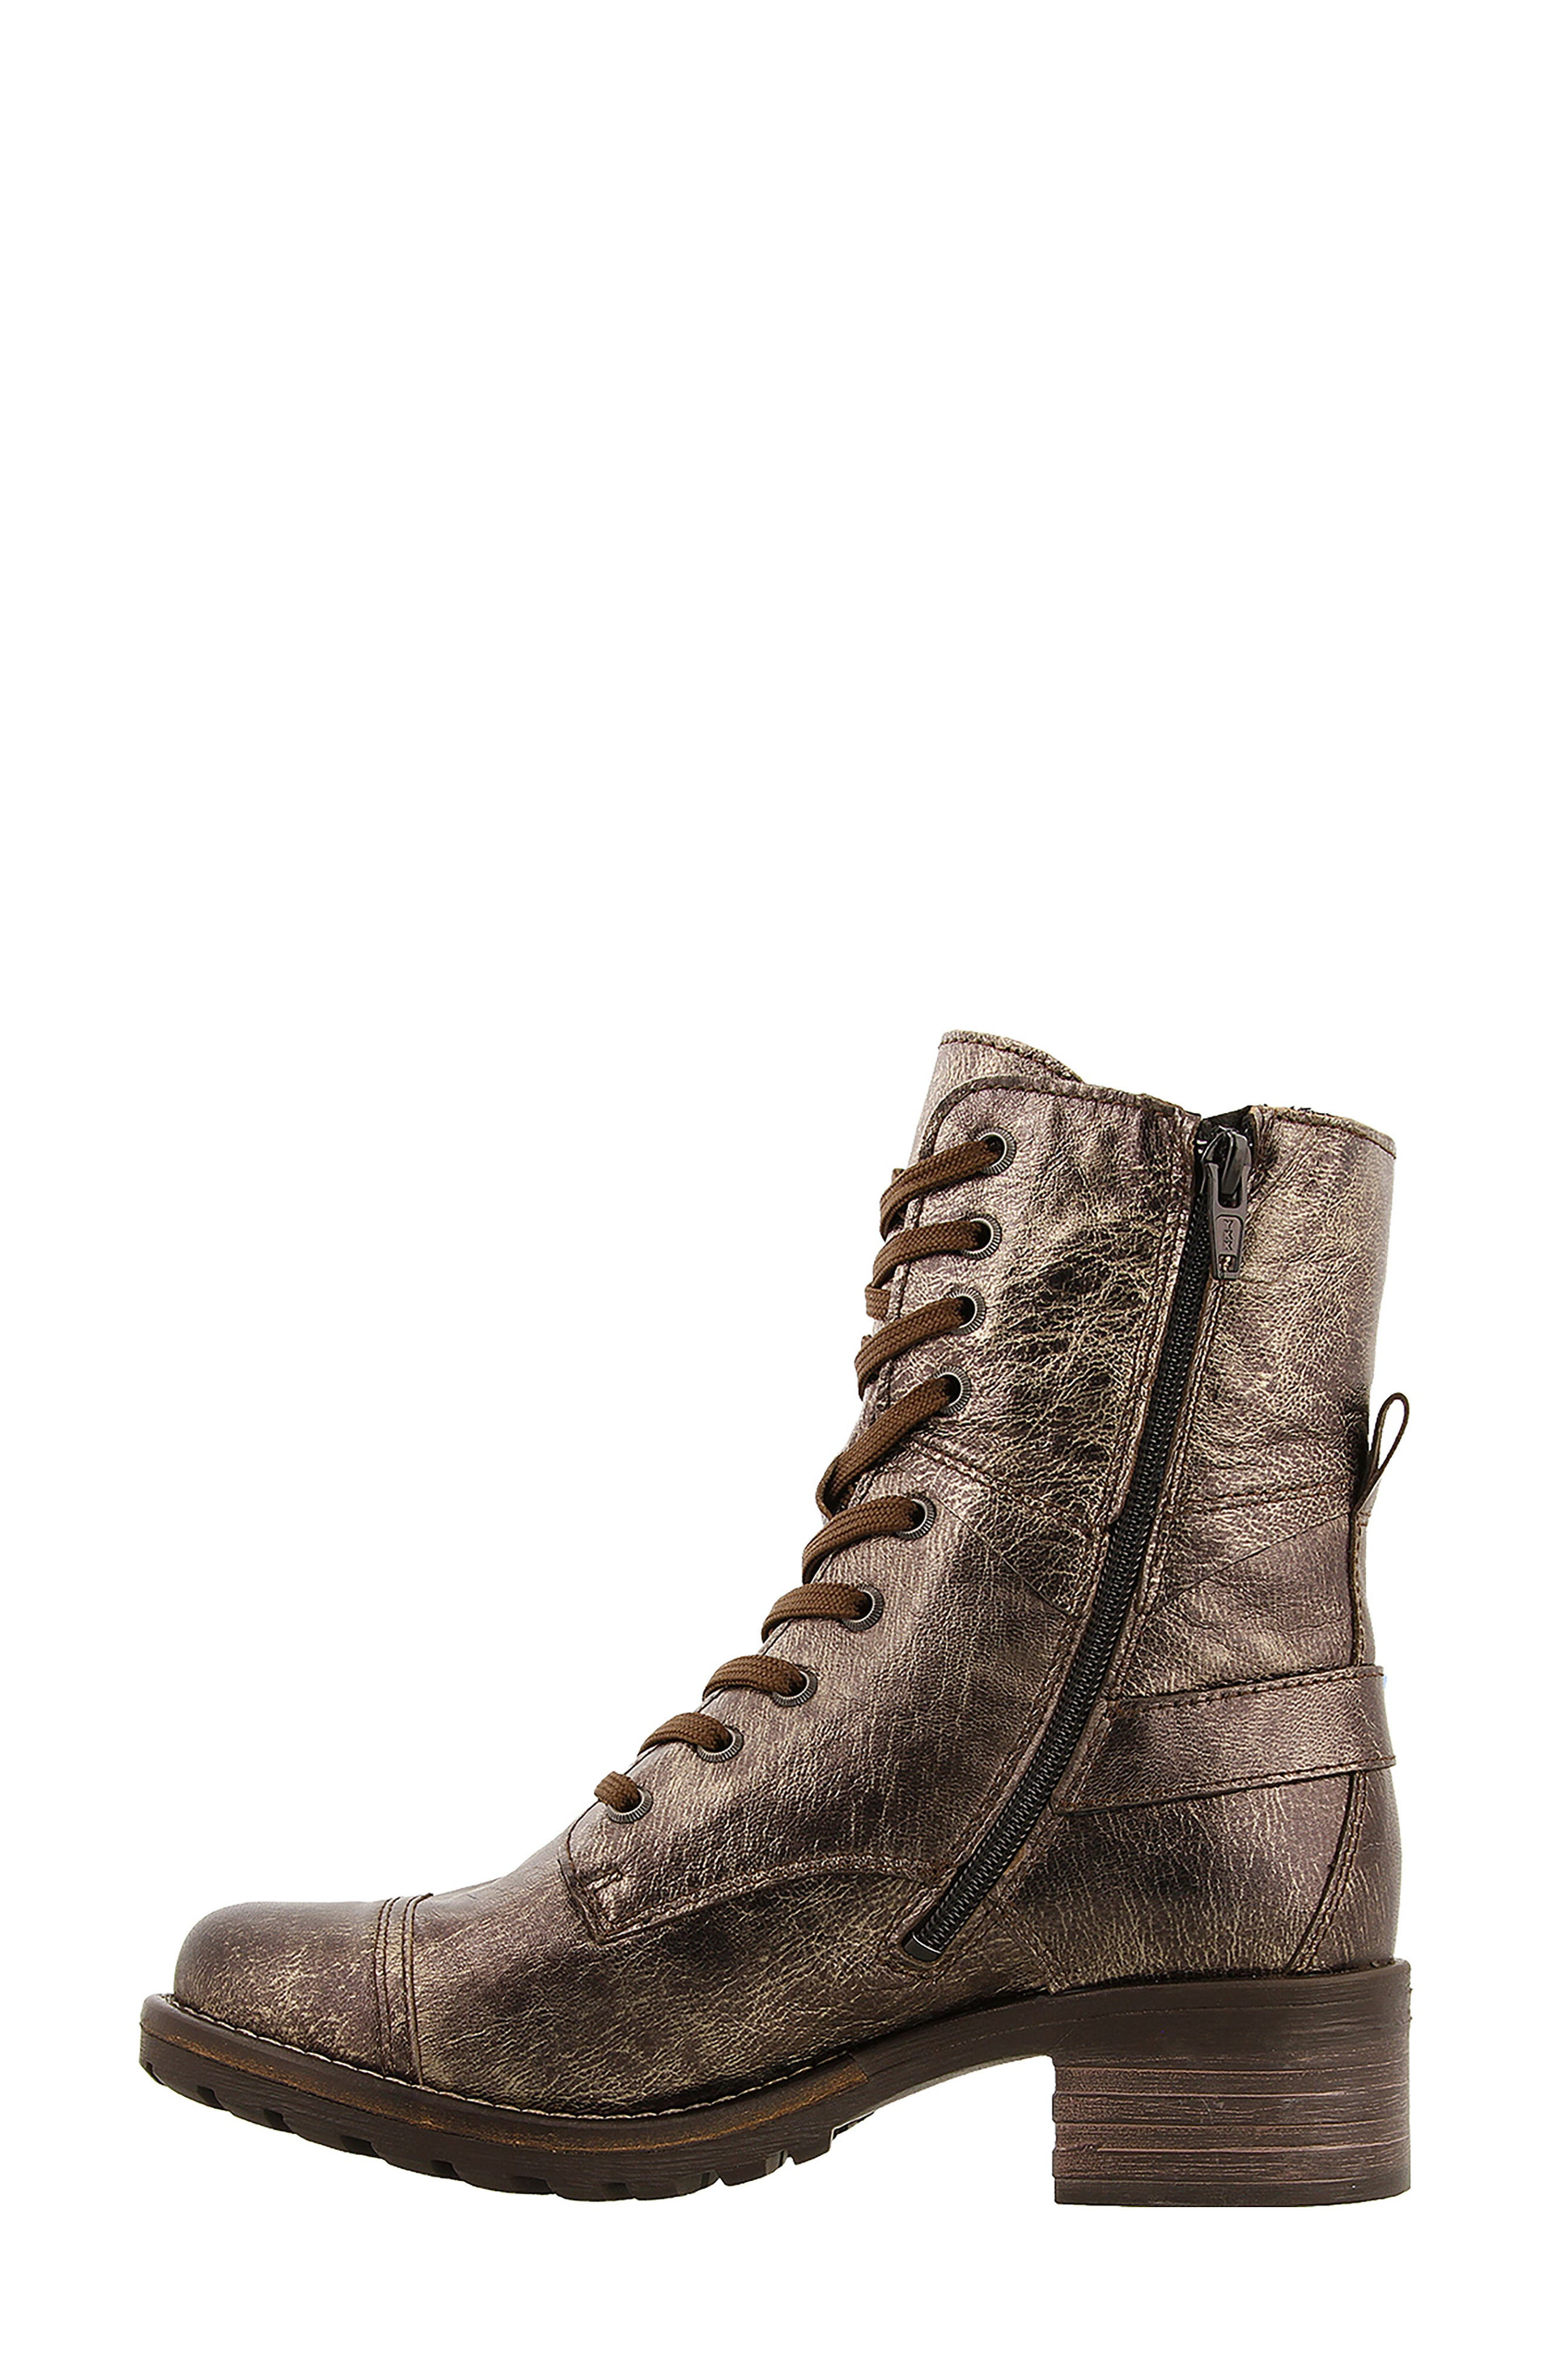 Crave Boot,                             Alternate thumbnail 3, color,                             BRONZE LEATHER